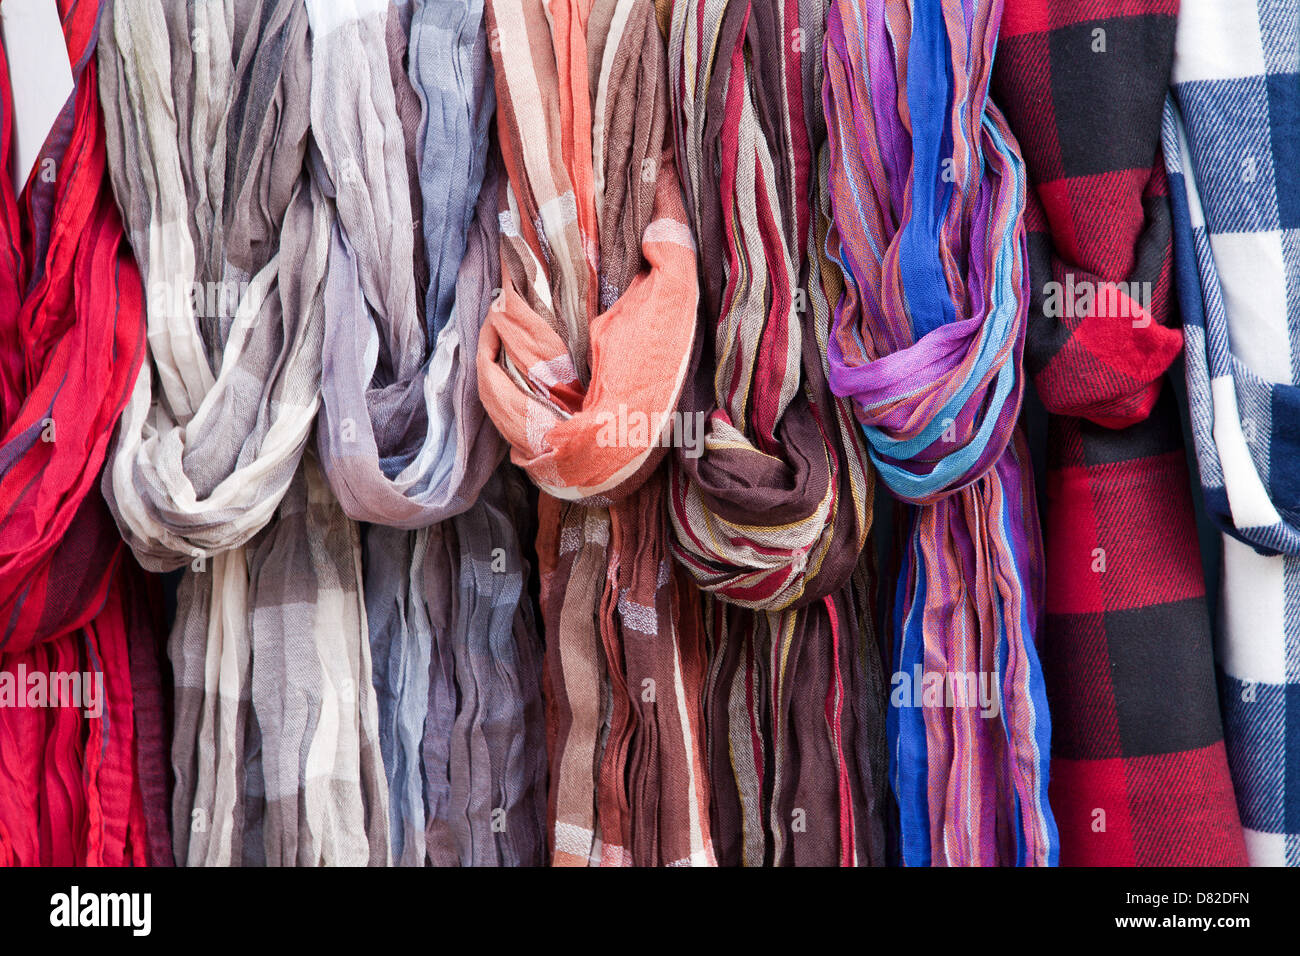 headcloths from market in Madrid - Stock Image